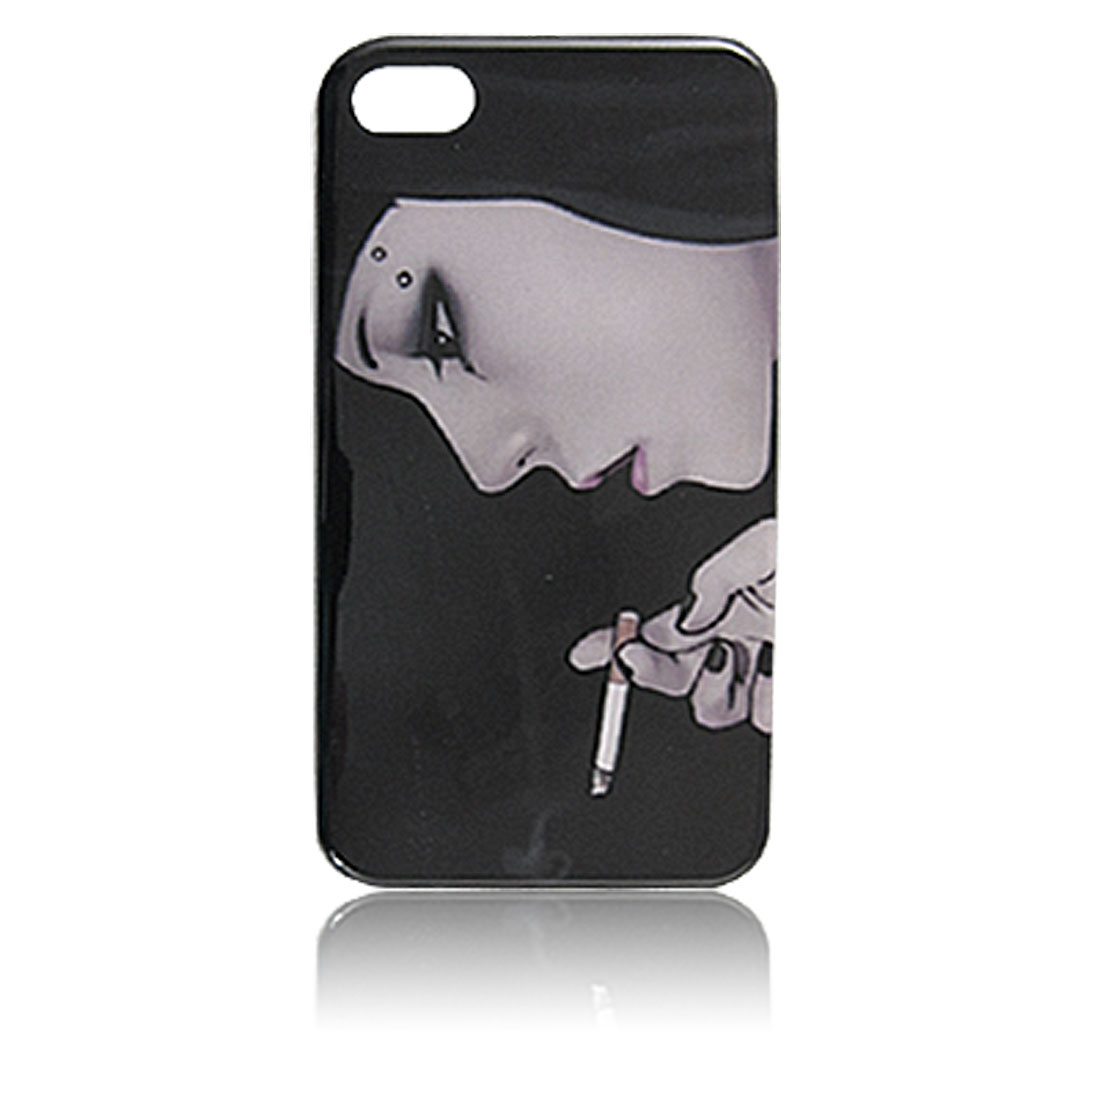 Cartoon Lady Printed Black Hard Plastic IMD Back Case Shell for iPhone 4 4G 4S